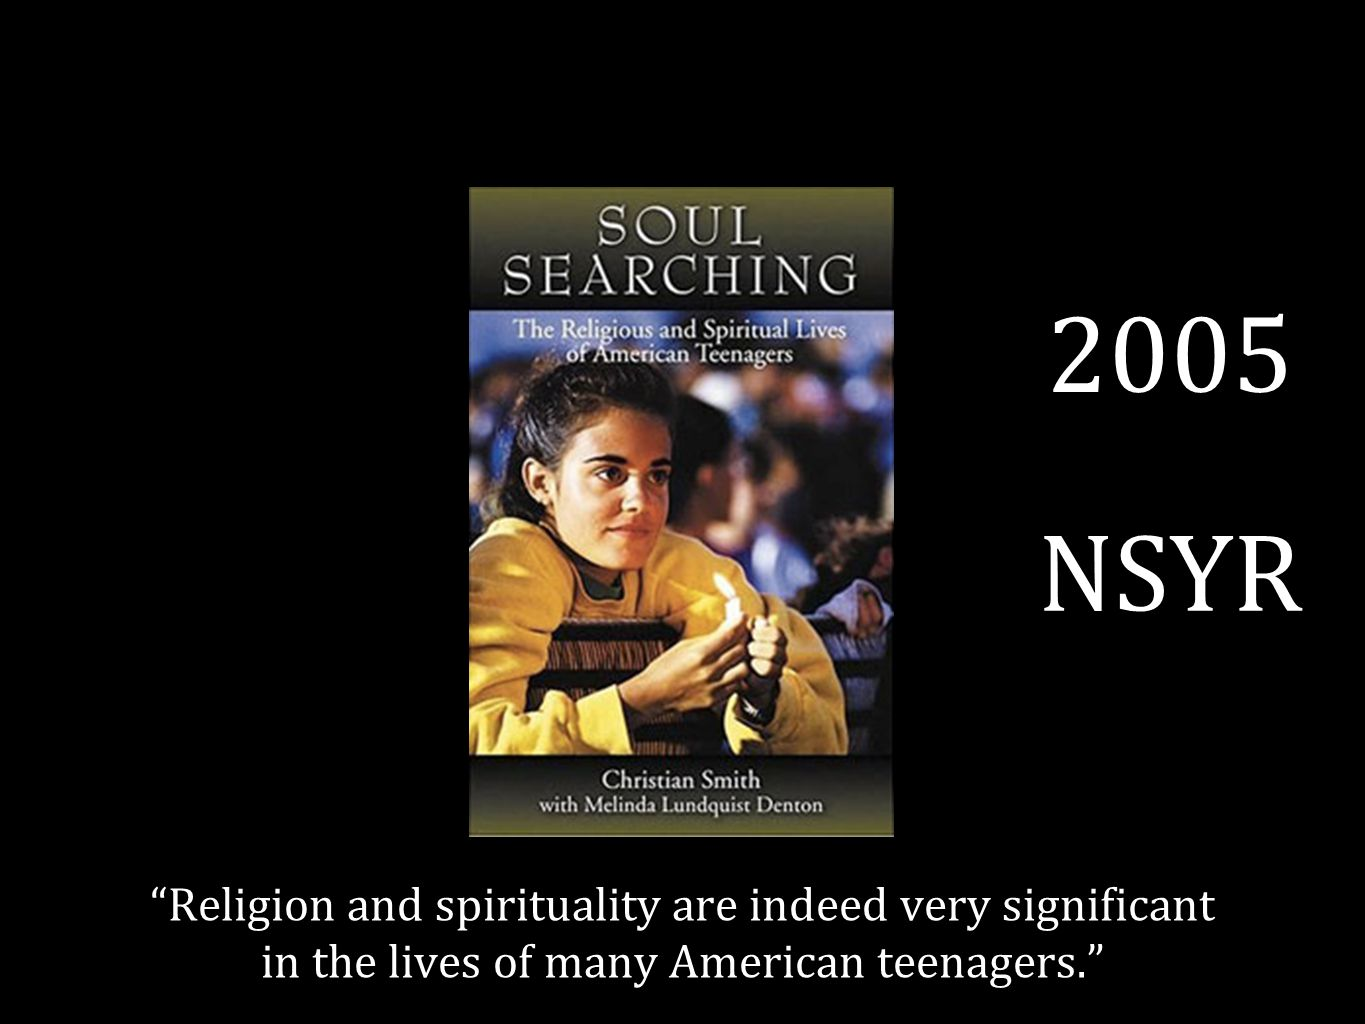 2005 NSYR Religion and spirituality are indeed very significant in the lives of many American teenagers.